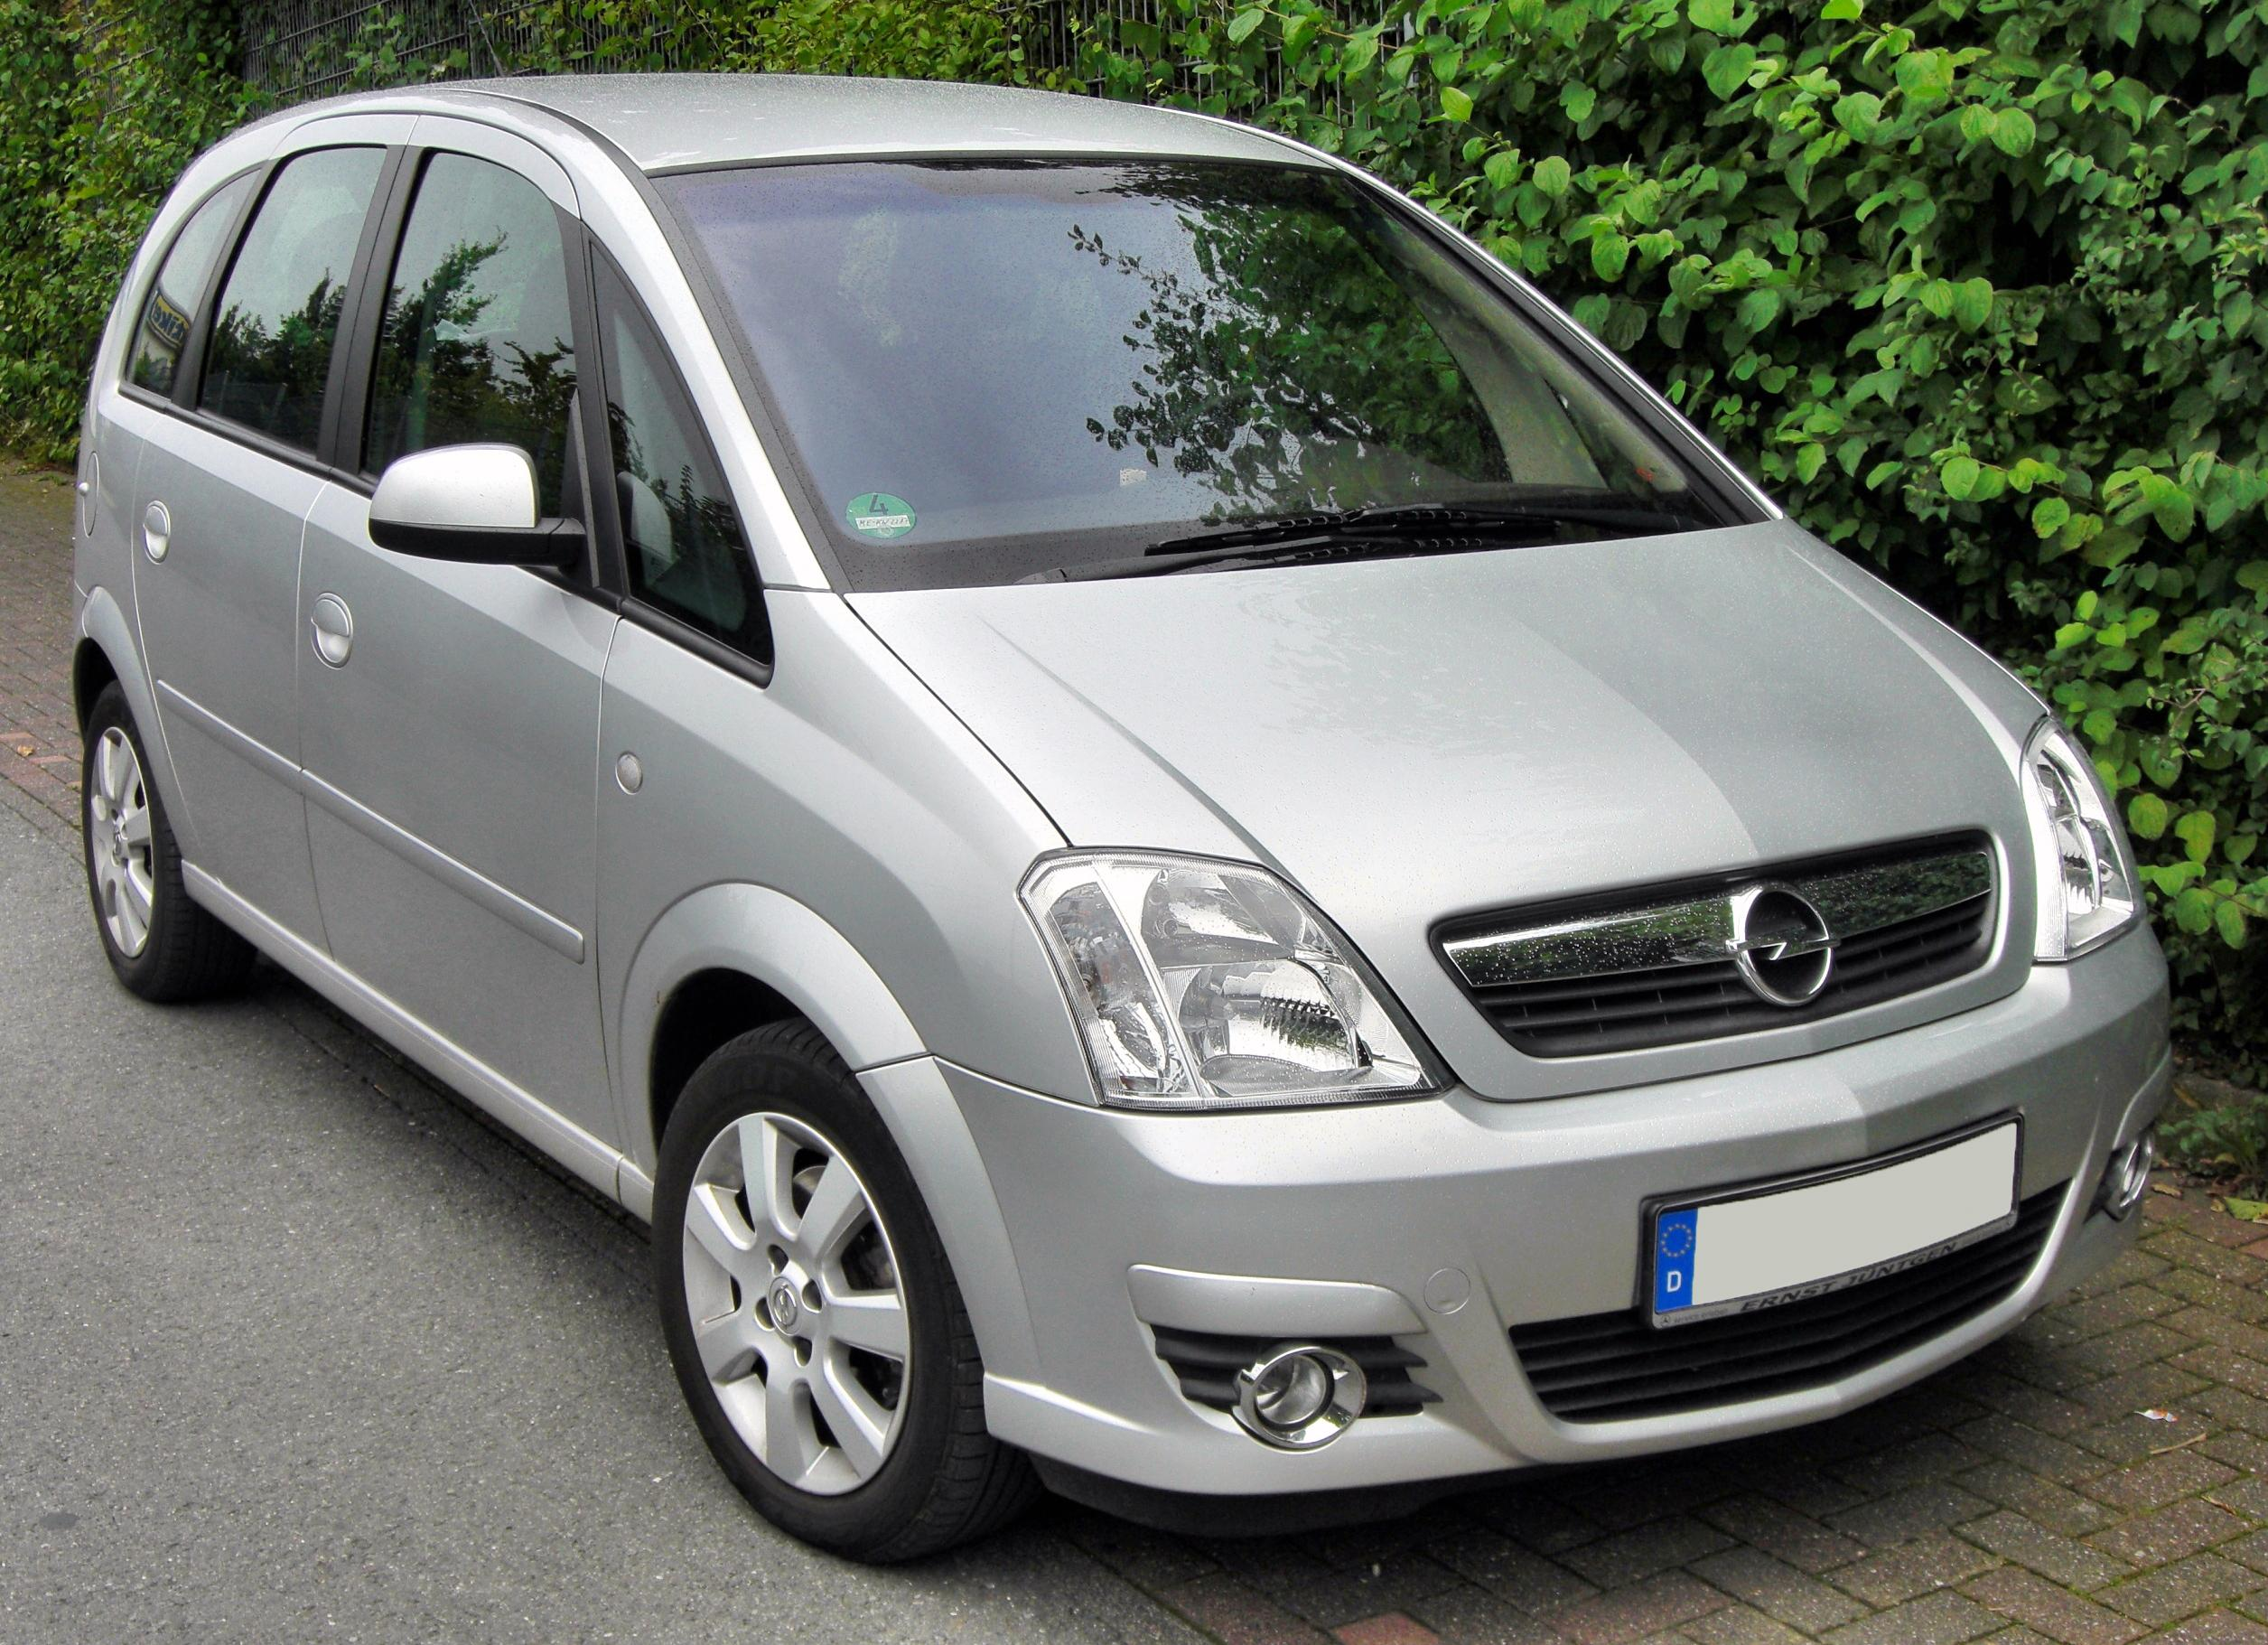 2009 opel meriva photos informations articles. Black Bedroom Furniture Sets. Home Design Ideas